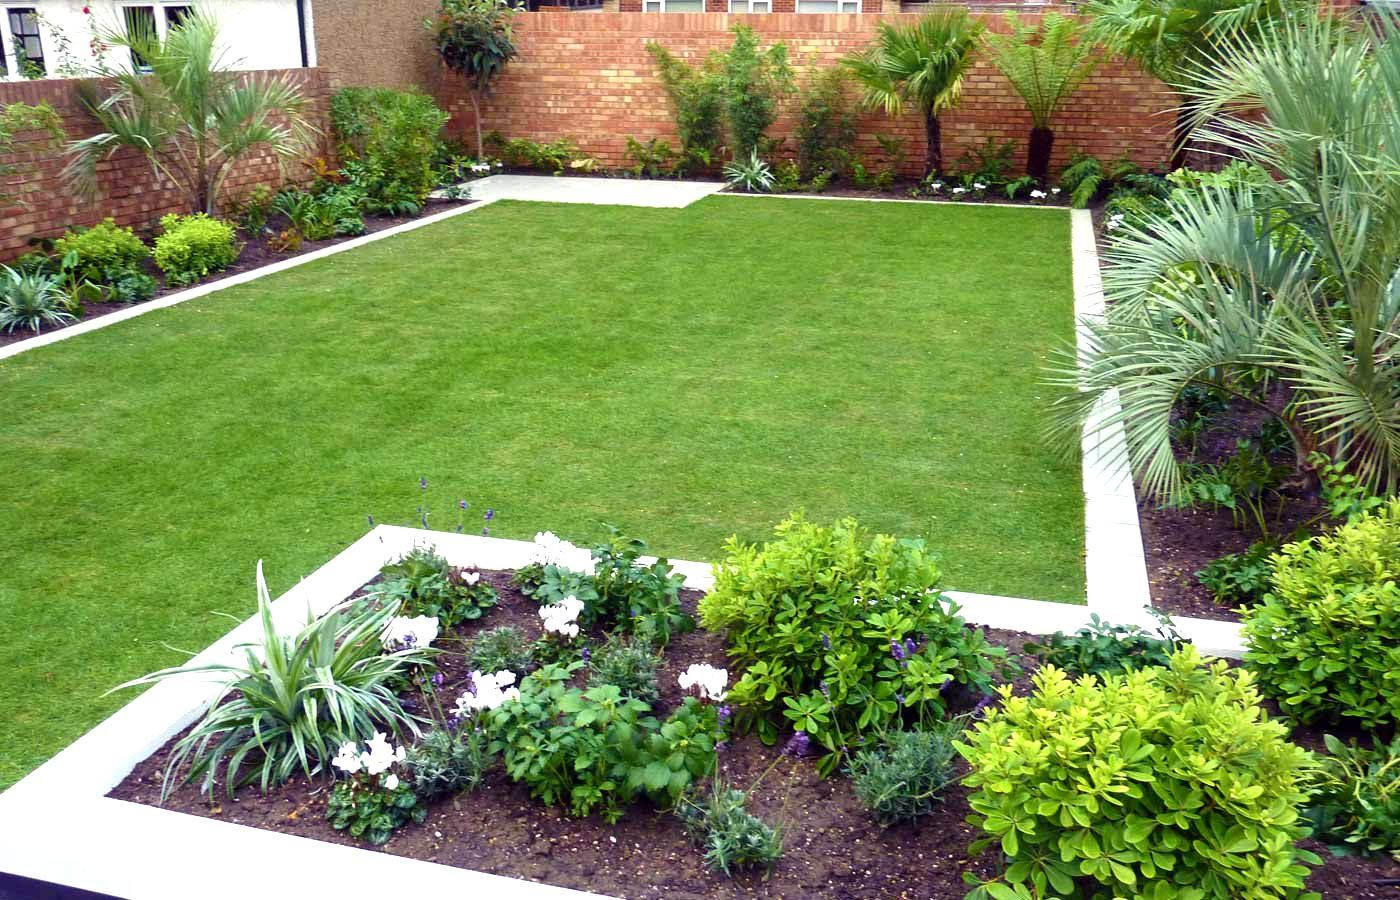 Simple garden designs no fret small garden design for Small simple garden design ideas